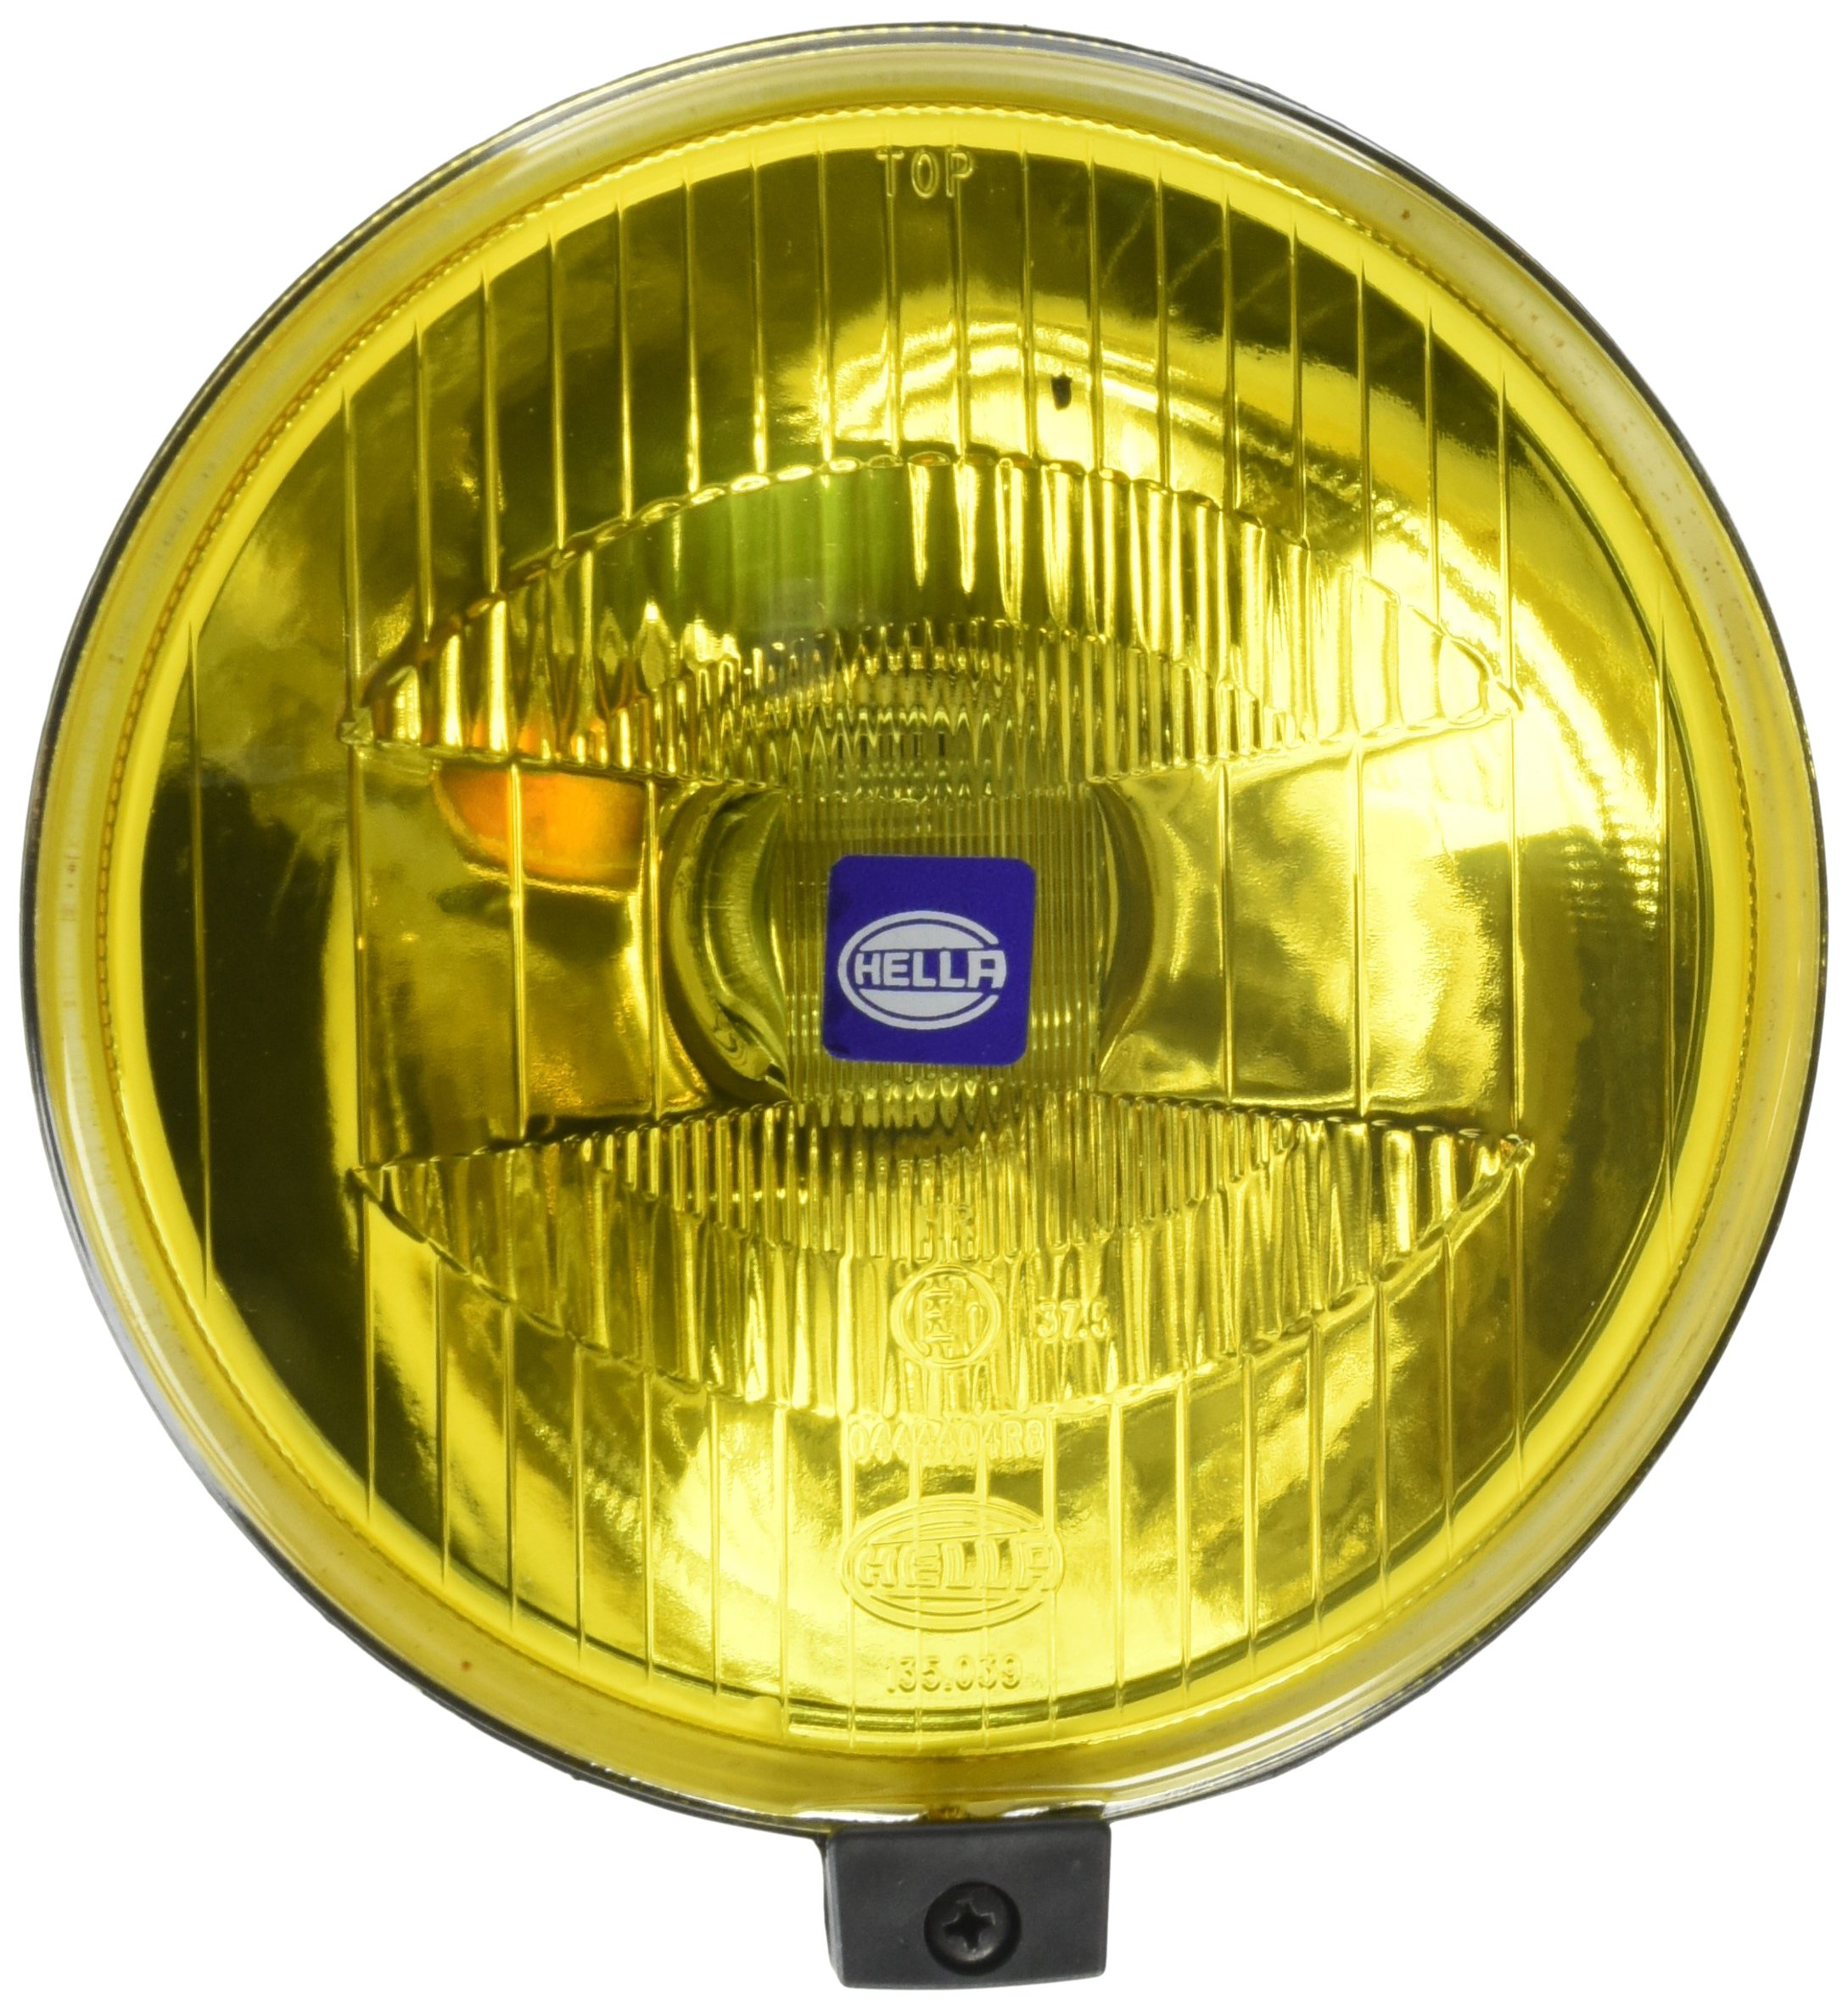 HELLA 005750512 500 Series Amber Driving Lamp (Single)